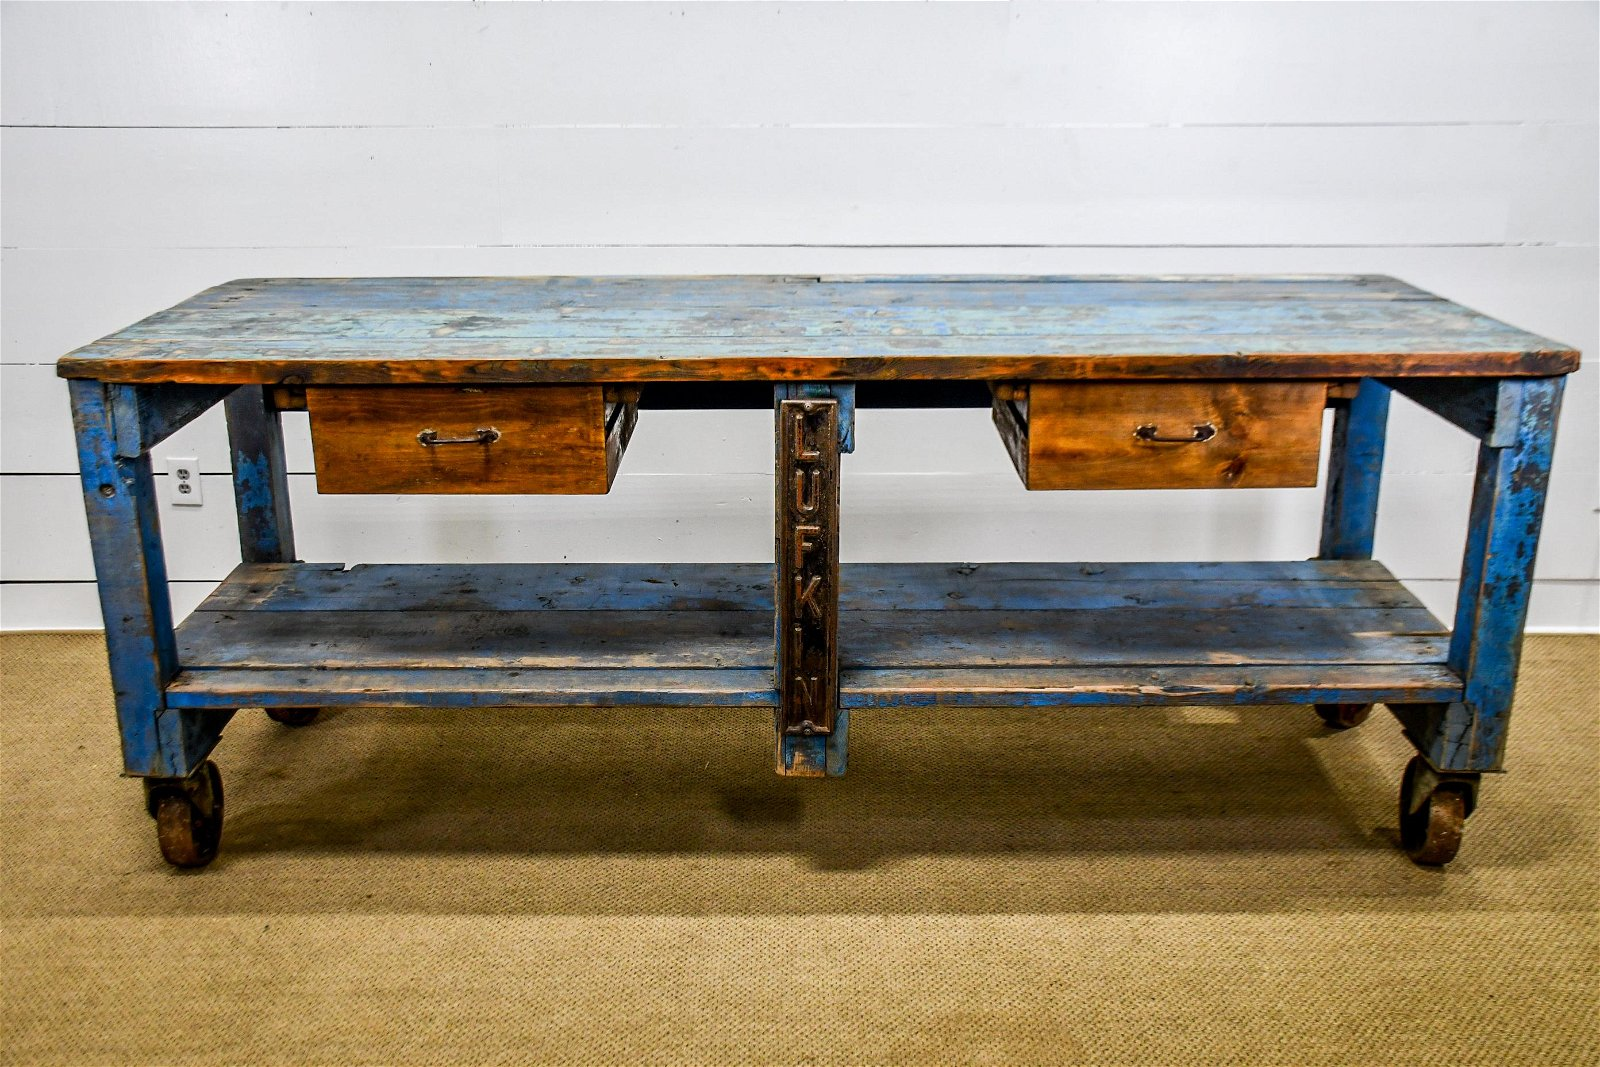 Painted Industrial Work Table w/Drawers, Casters 40